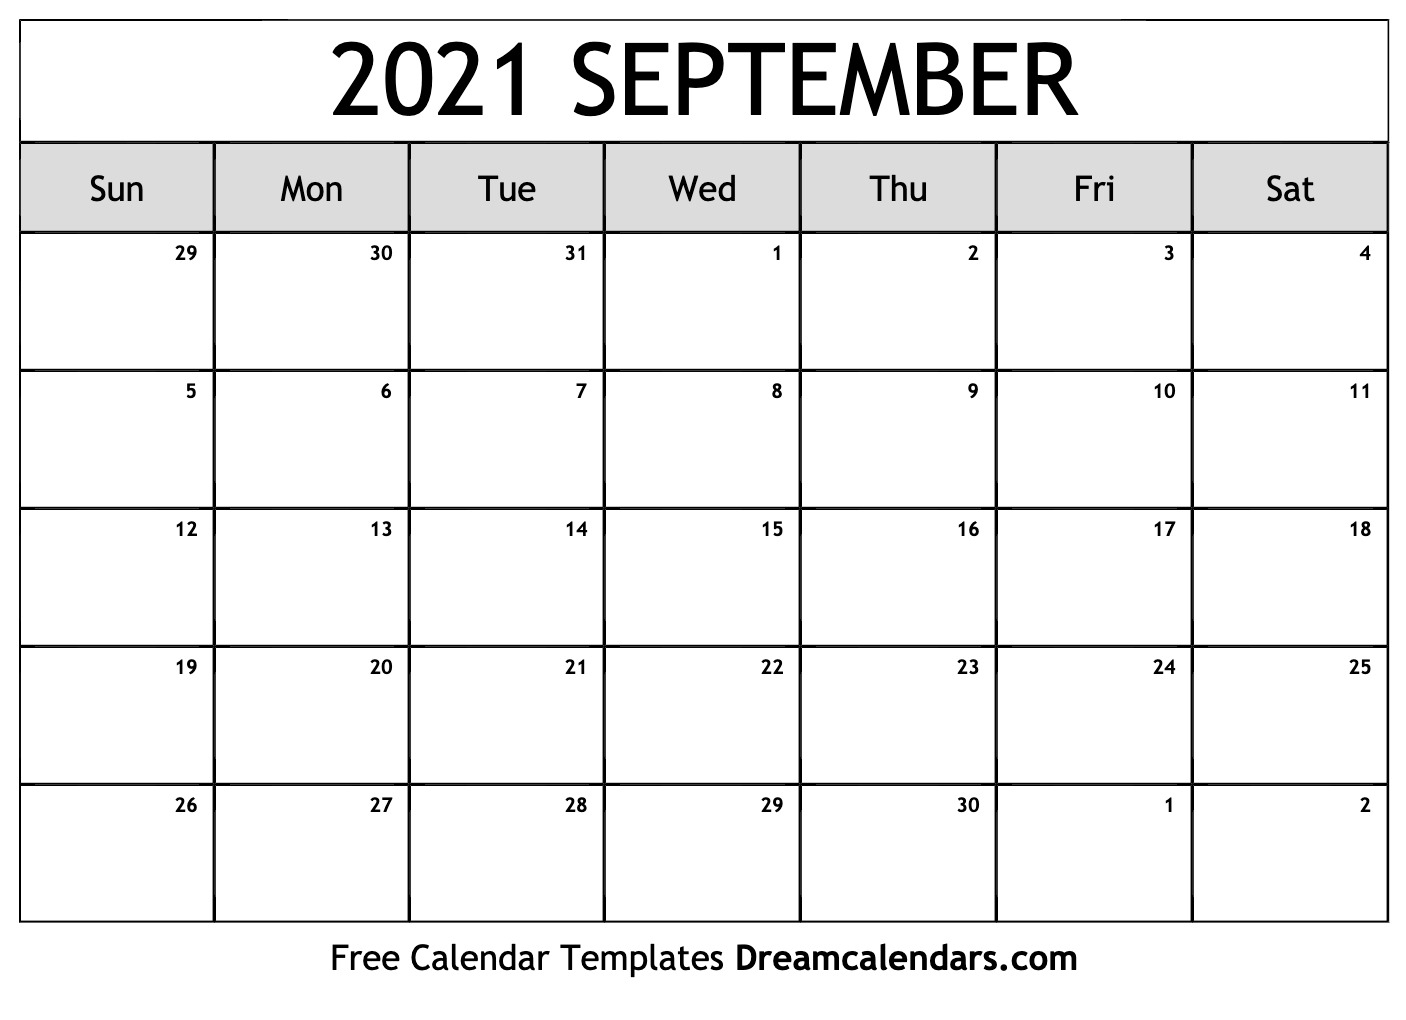 September 2021 Calendar | Free Blank Printable Templates regarding September 2021 Calendar Printable